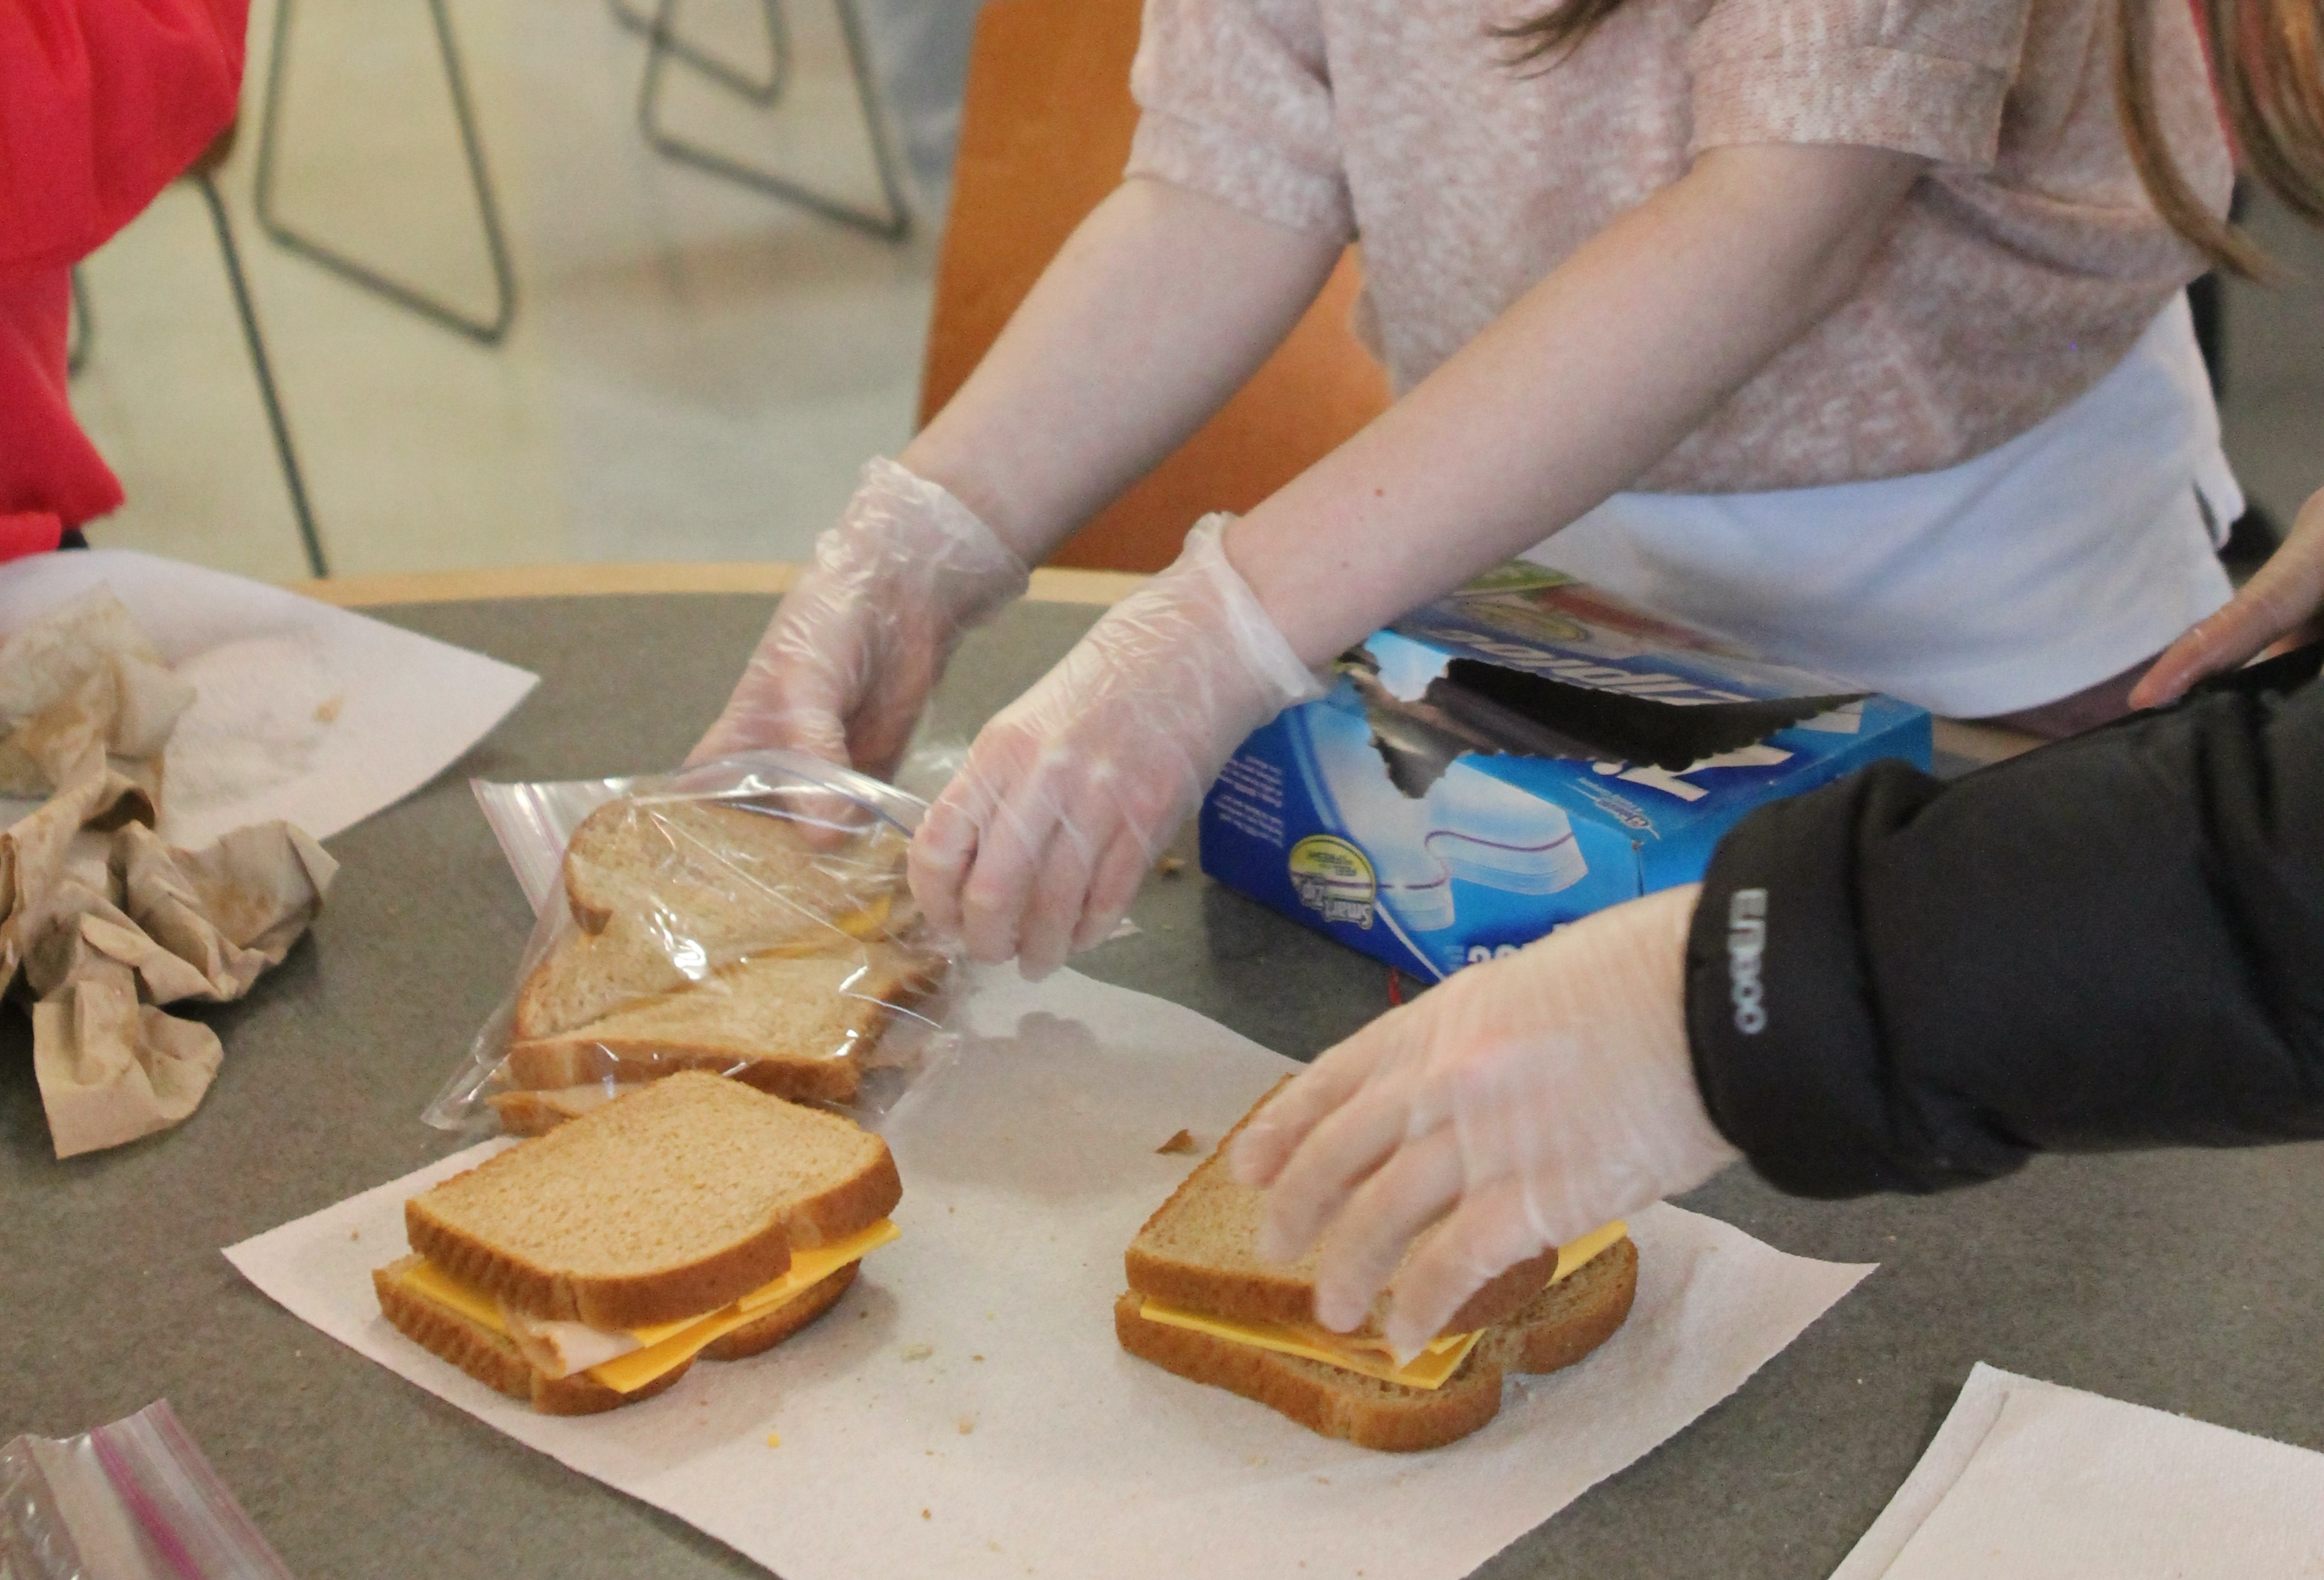 Saturday, May. 4th – Family Community Sandwich Making Service Event